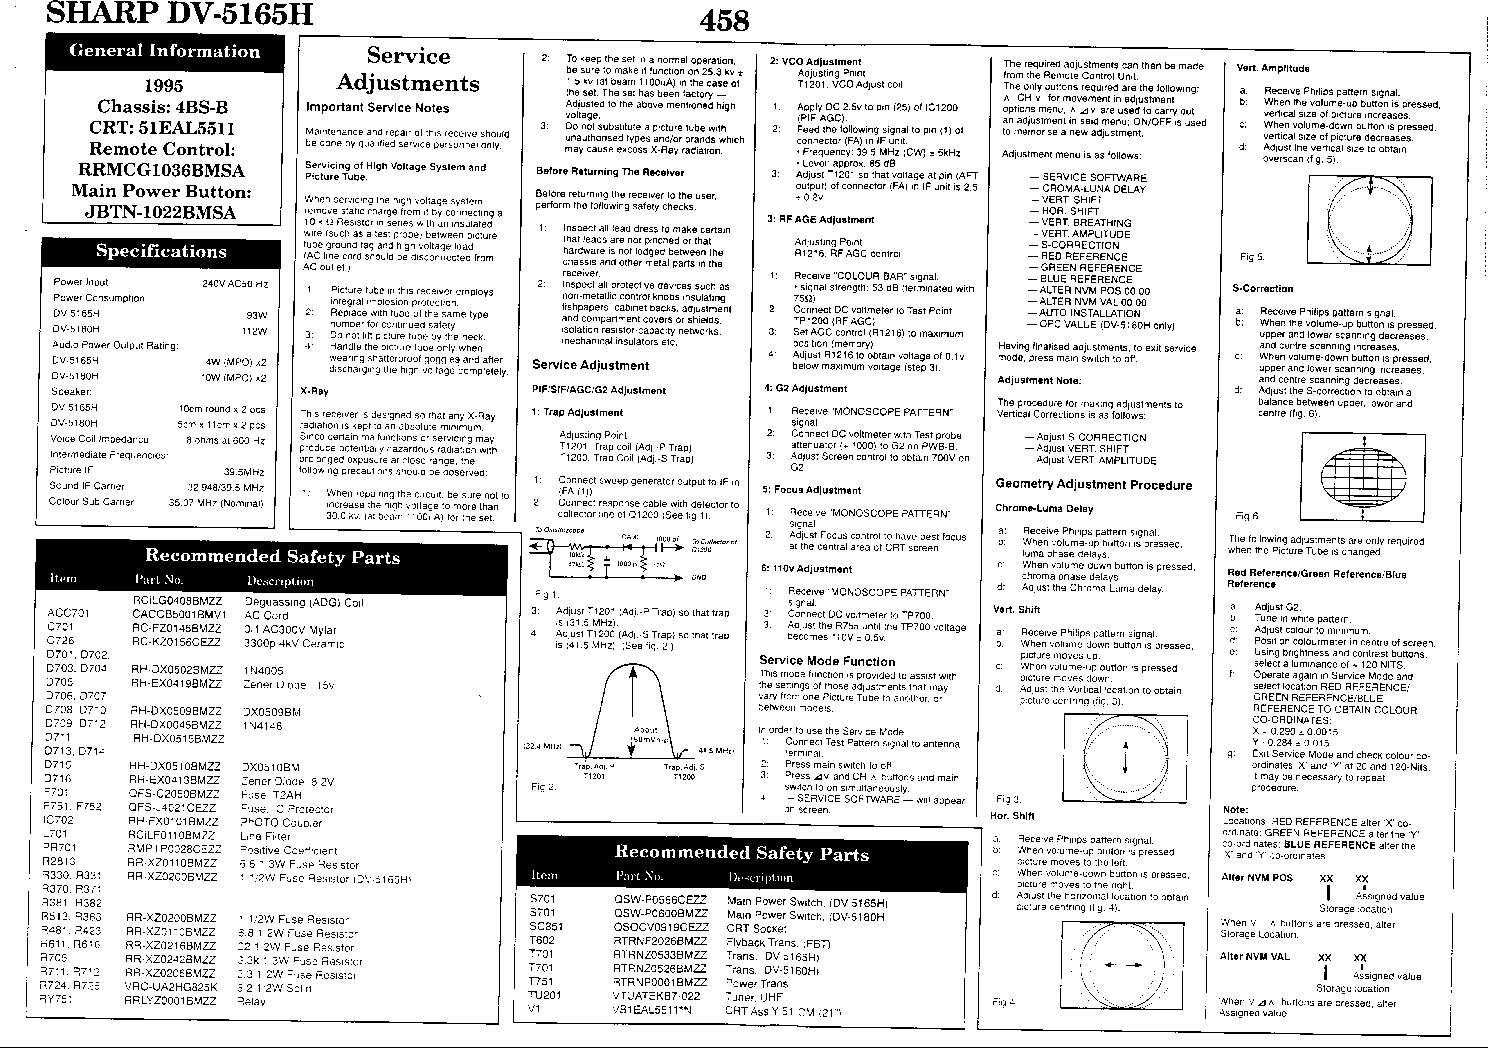 SHARP LC-20S1E SM Service Manual free download, schematics